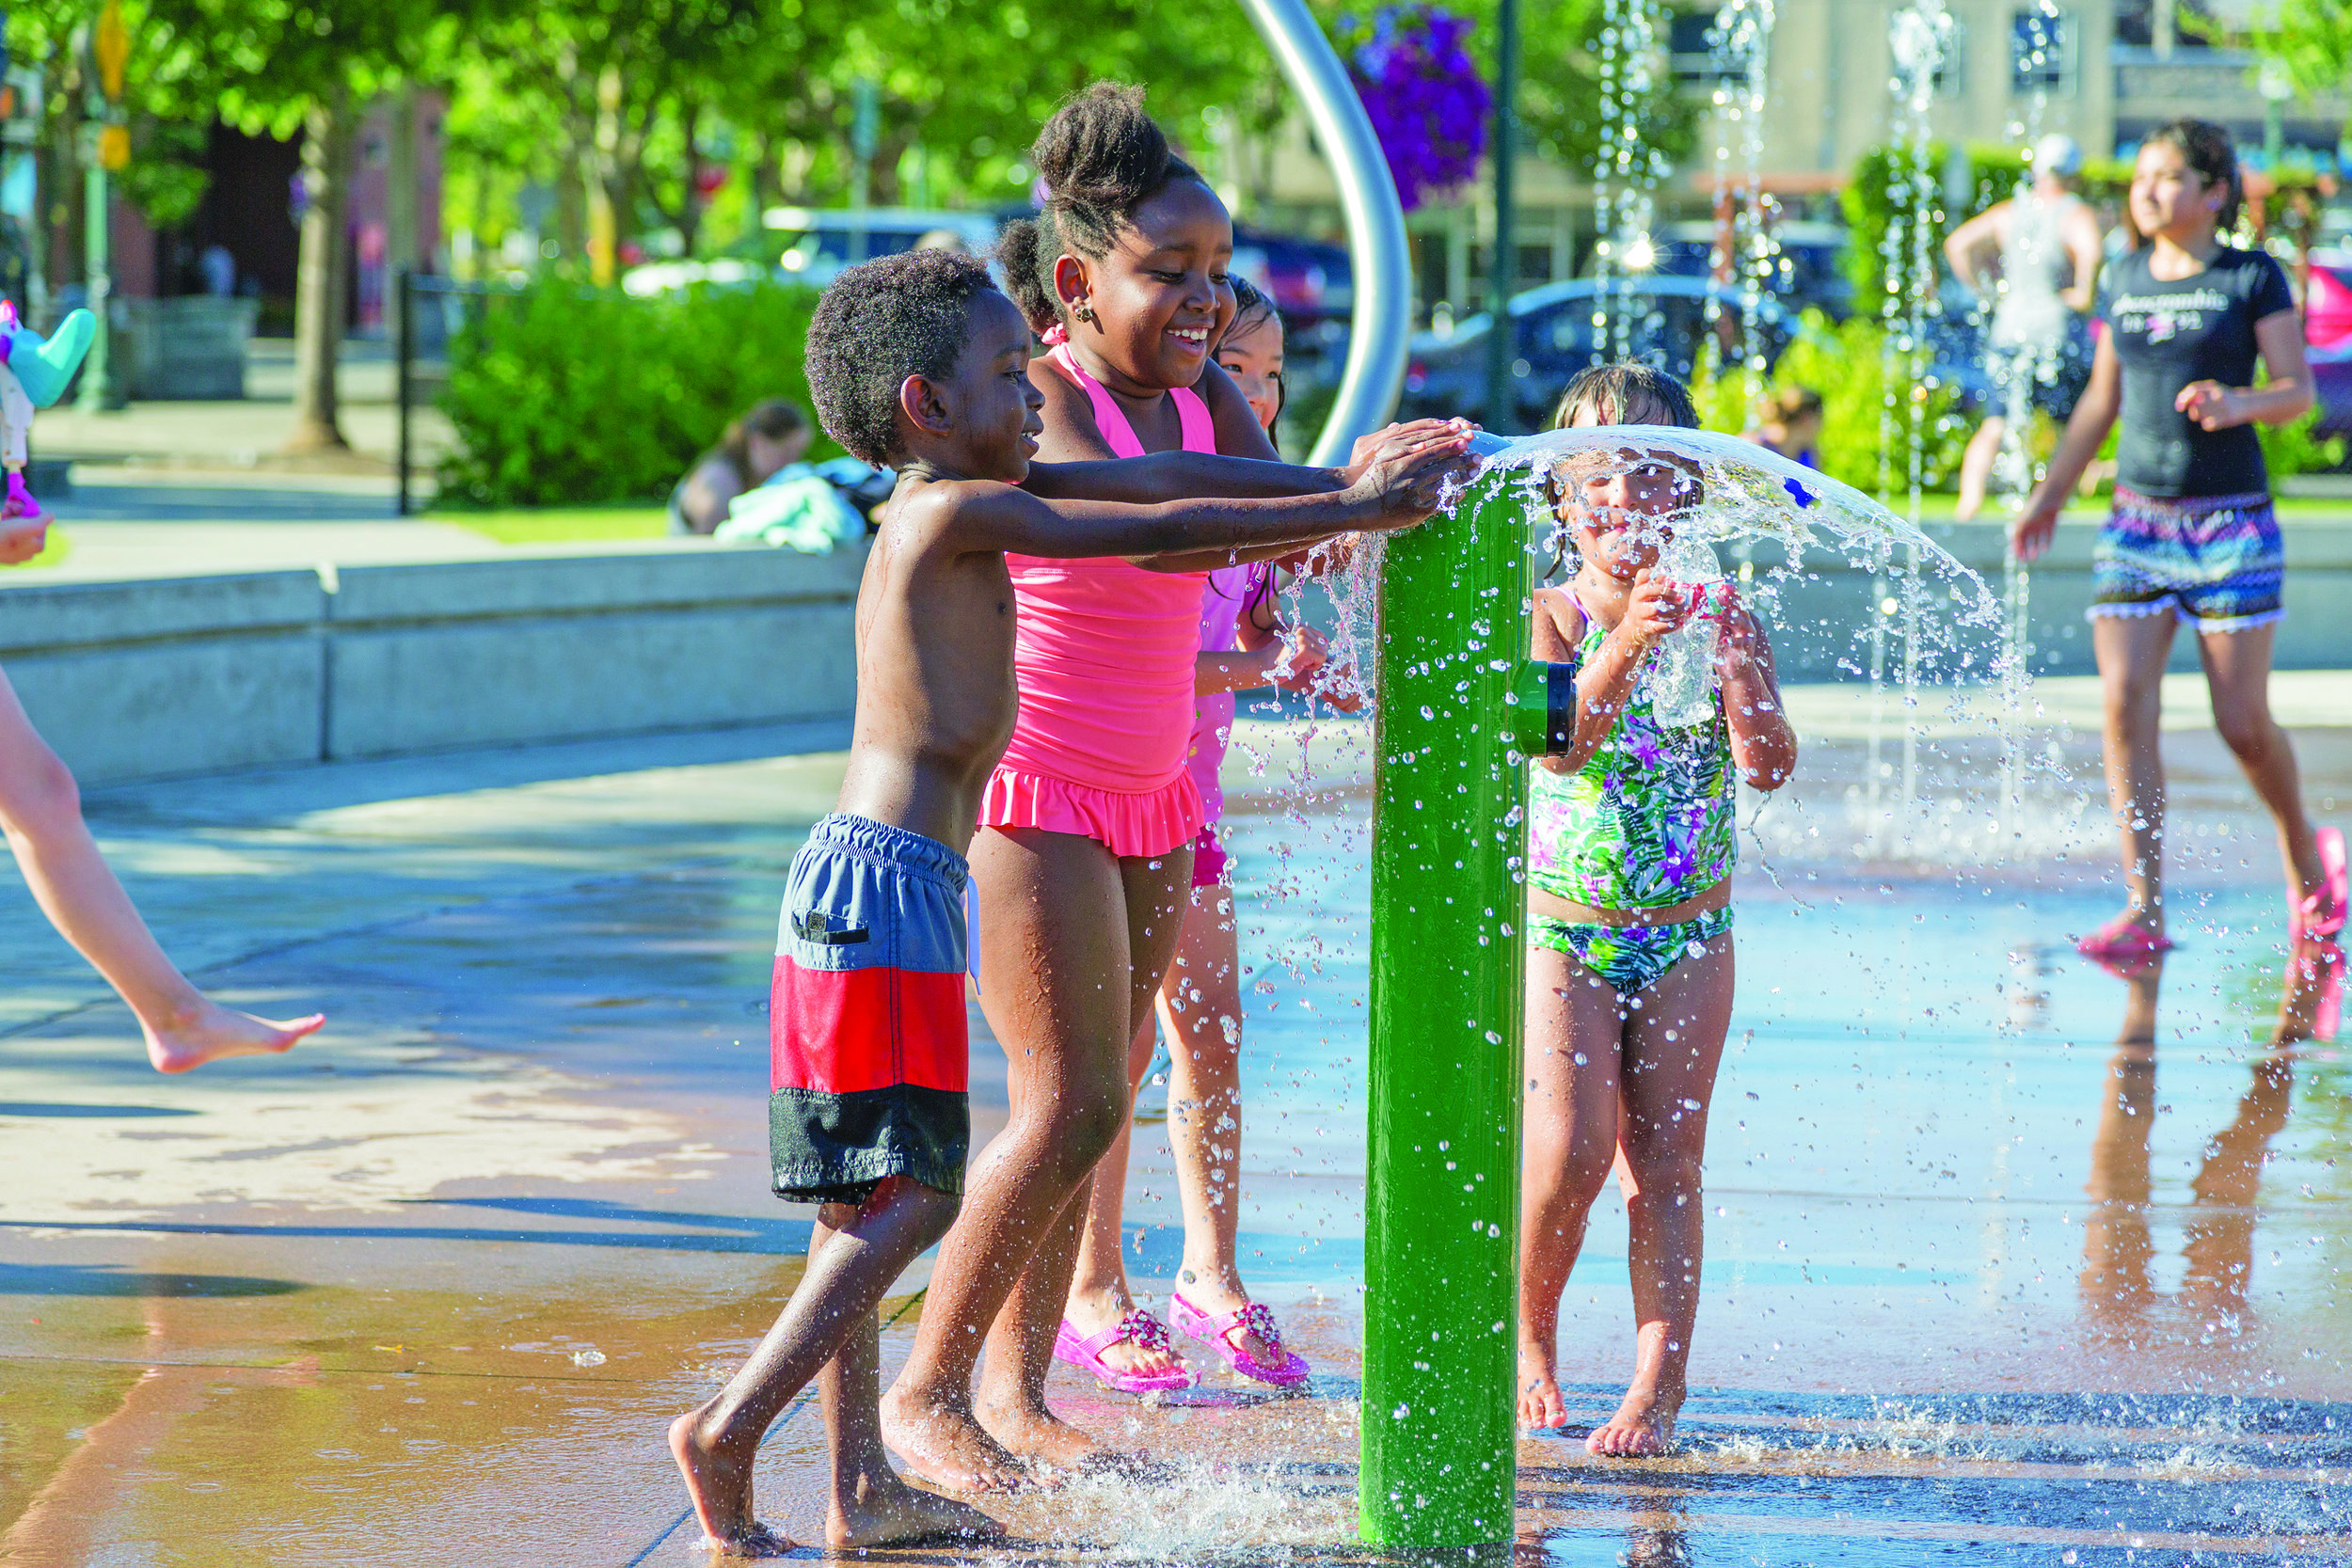 SplashPark_Small2.jpg